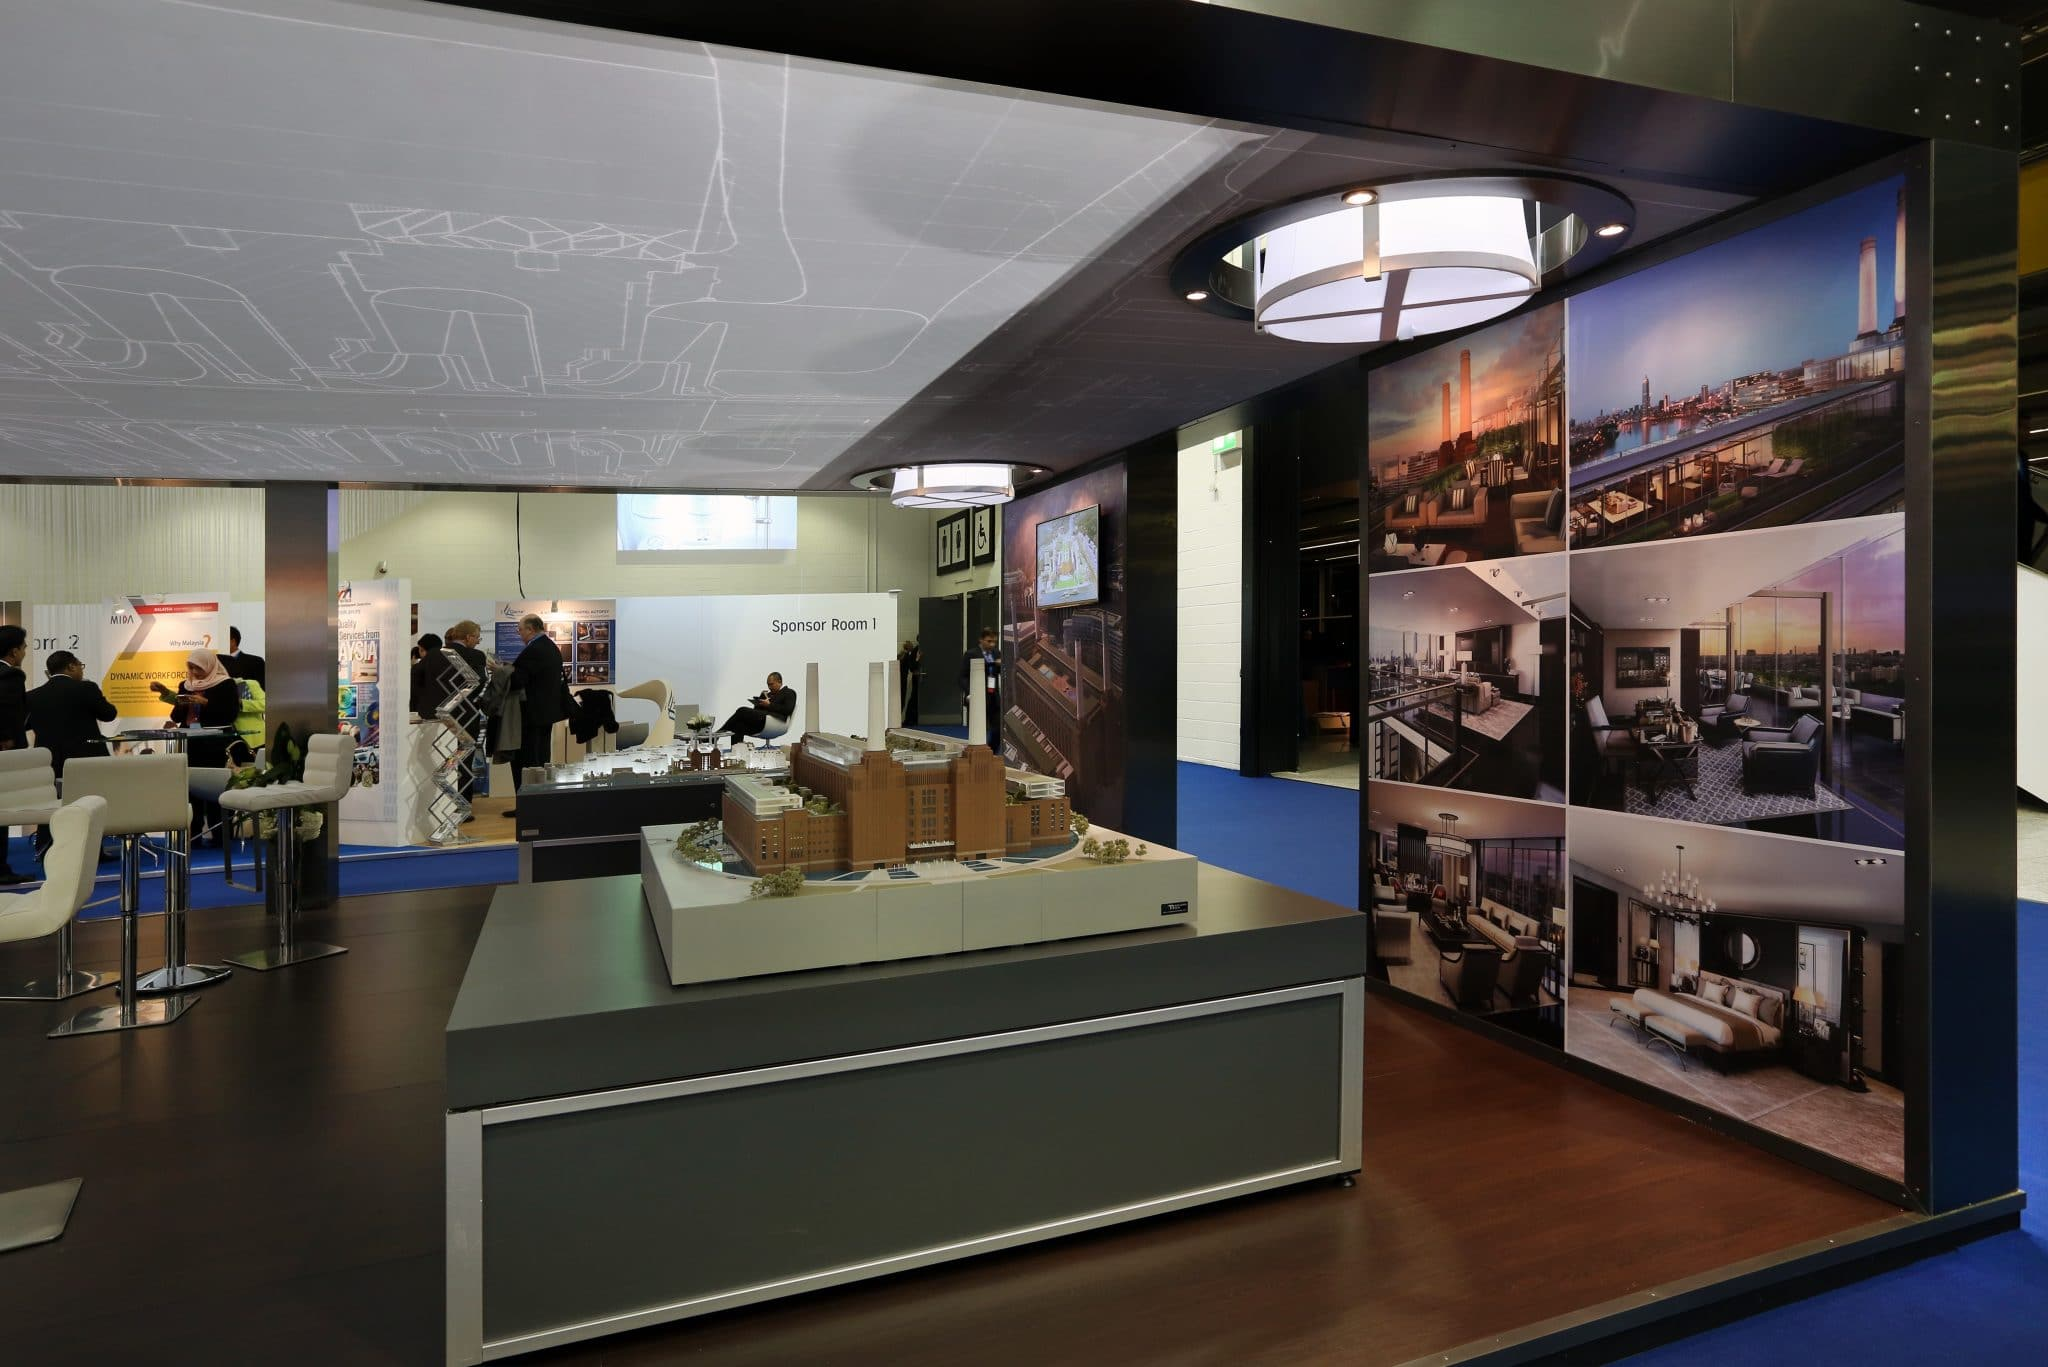 Exhibition Stand Design Companies Uk : Battersea power station development company at wief the